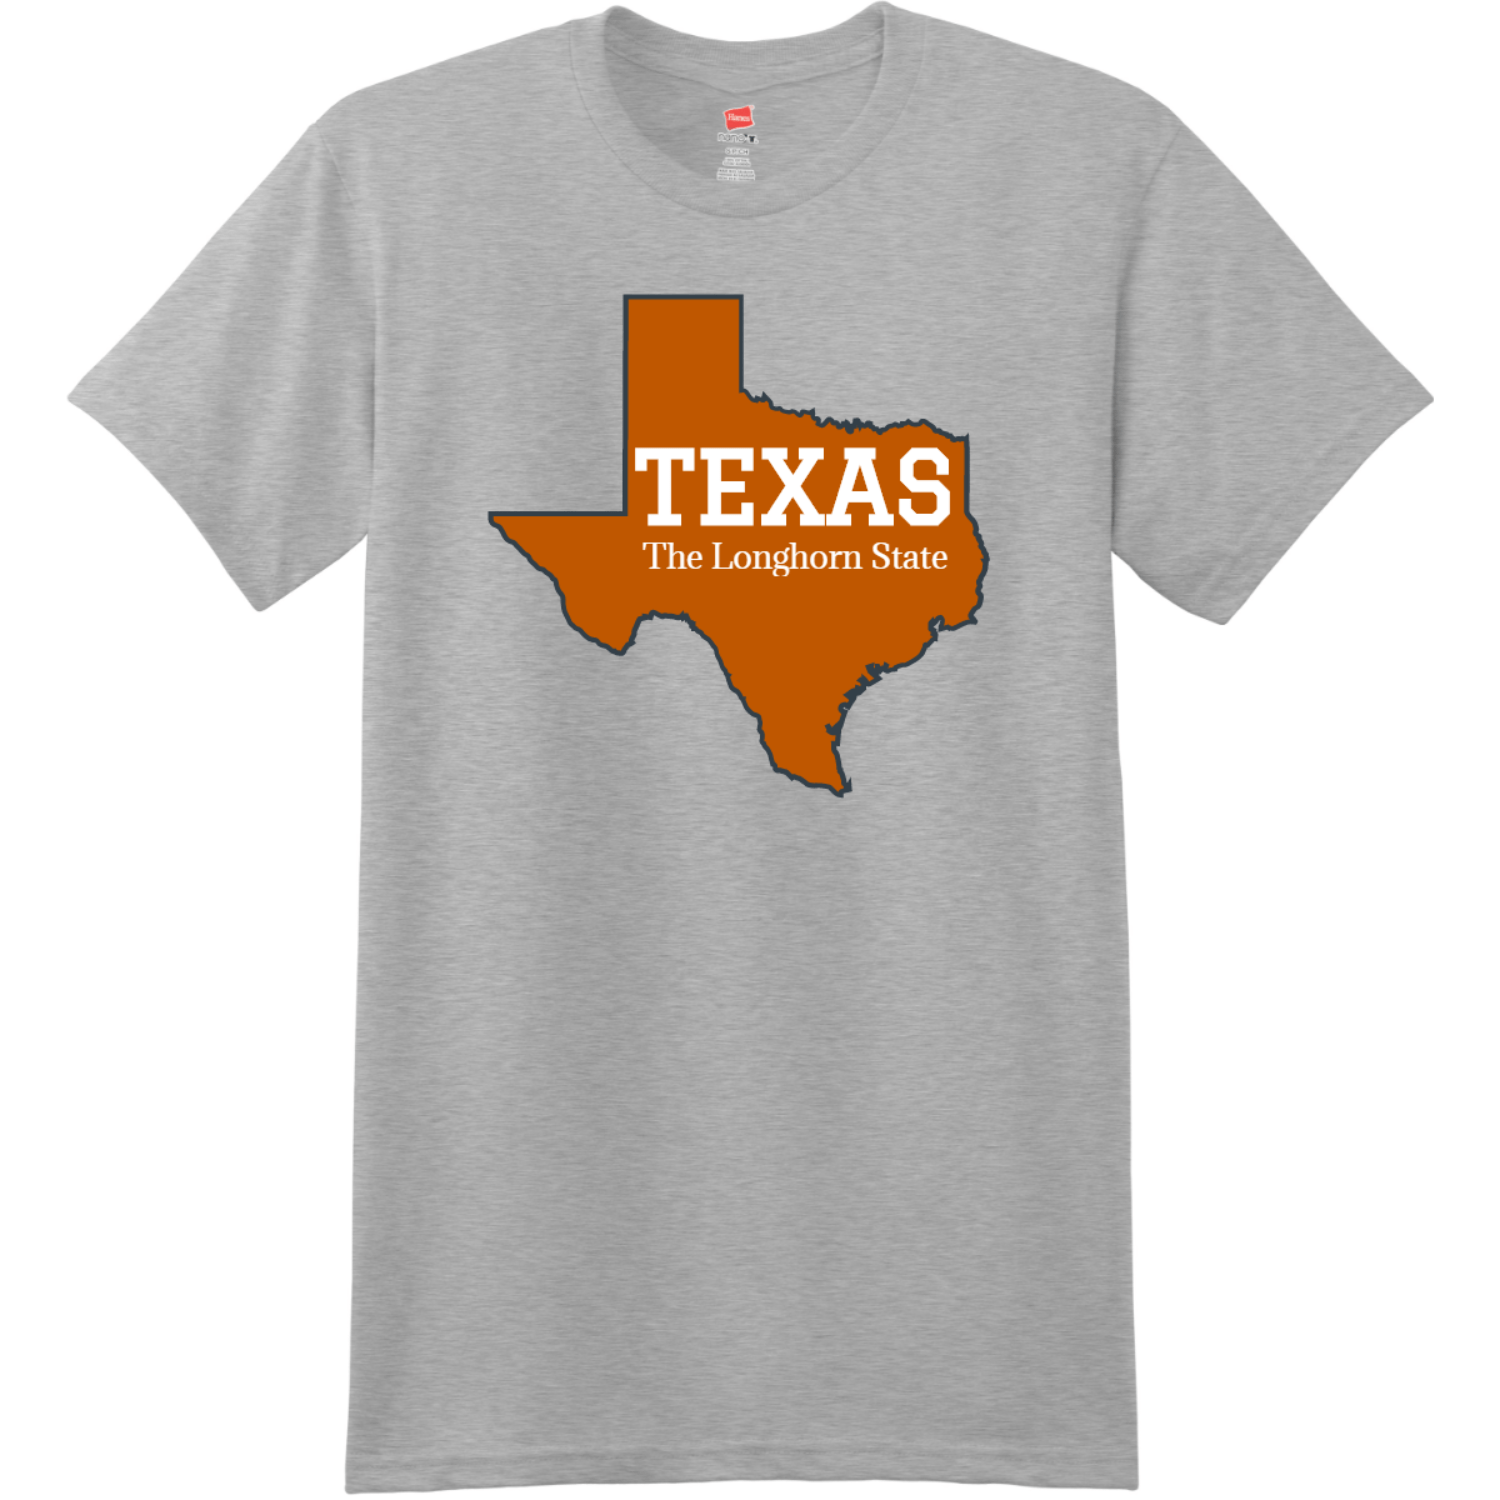 Texas The Longhorn State T Shirt Light Steel Hanes Nano 4980 Ringspun Cotton T Shirt